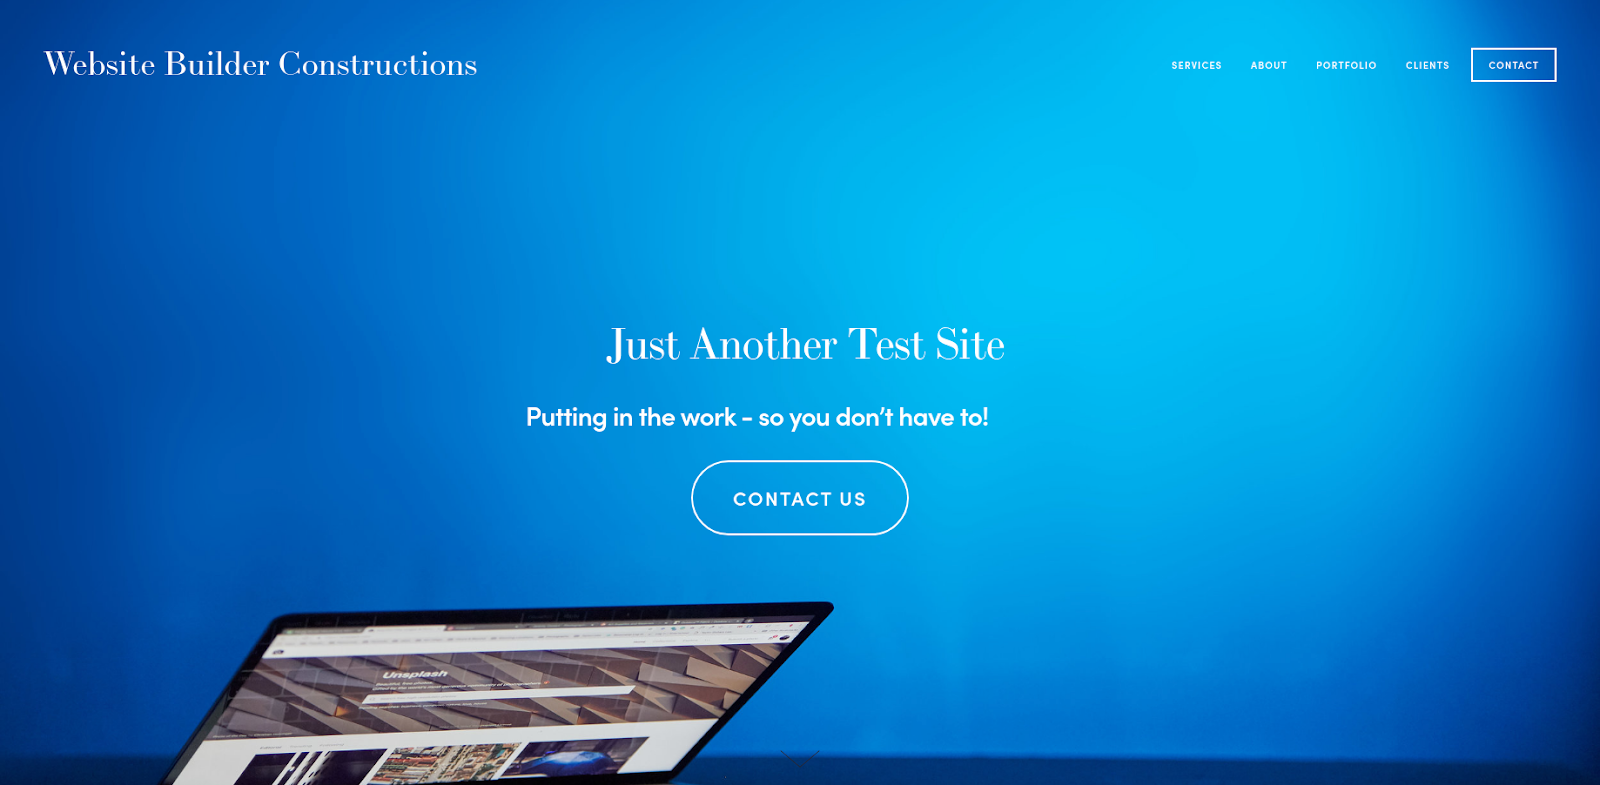 squarespace website builder test site